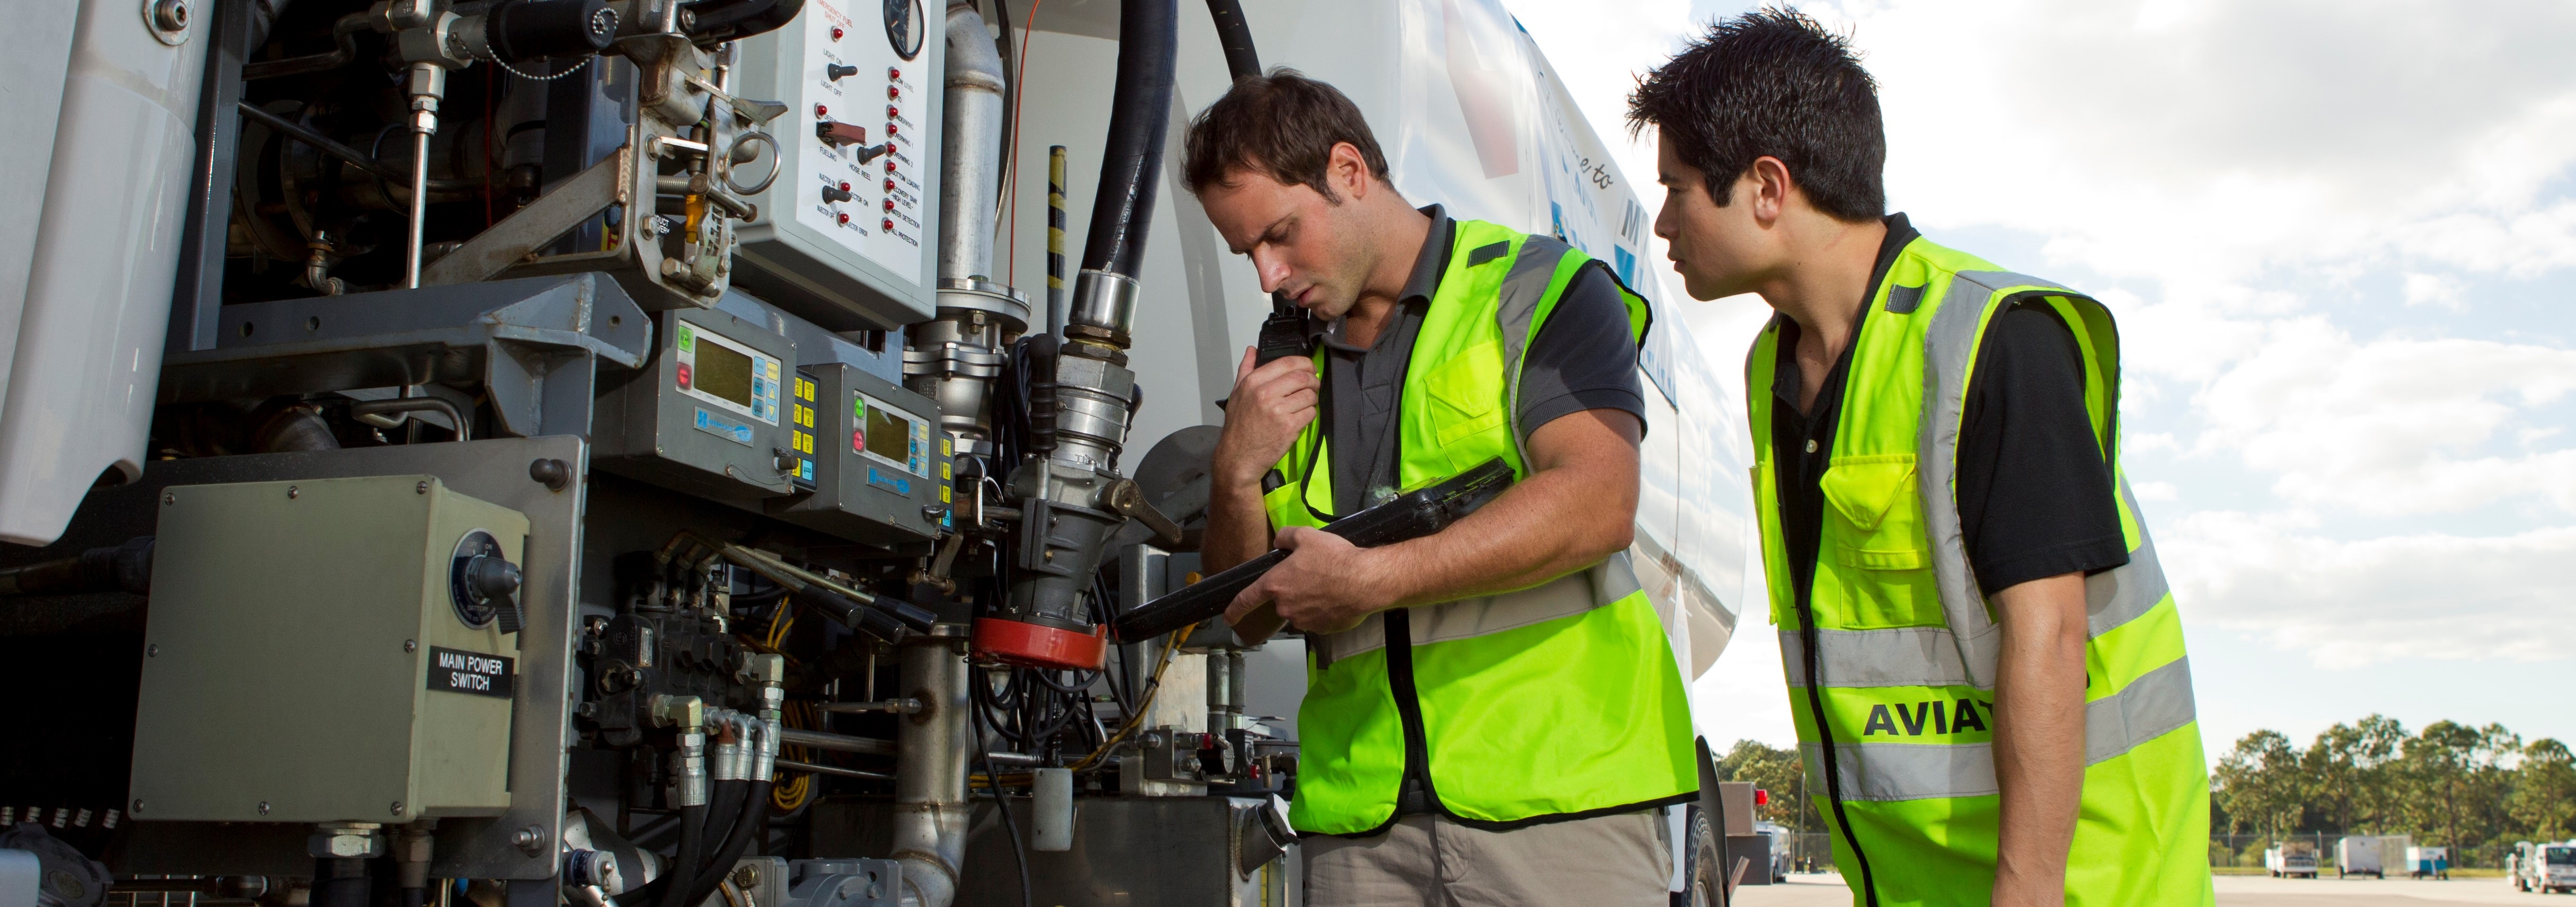 Two employees operating plane refueling truck